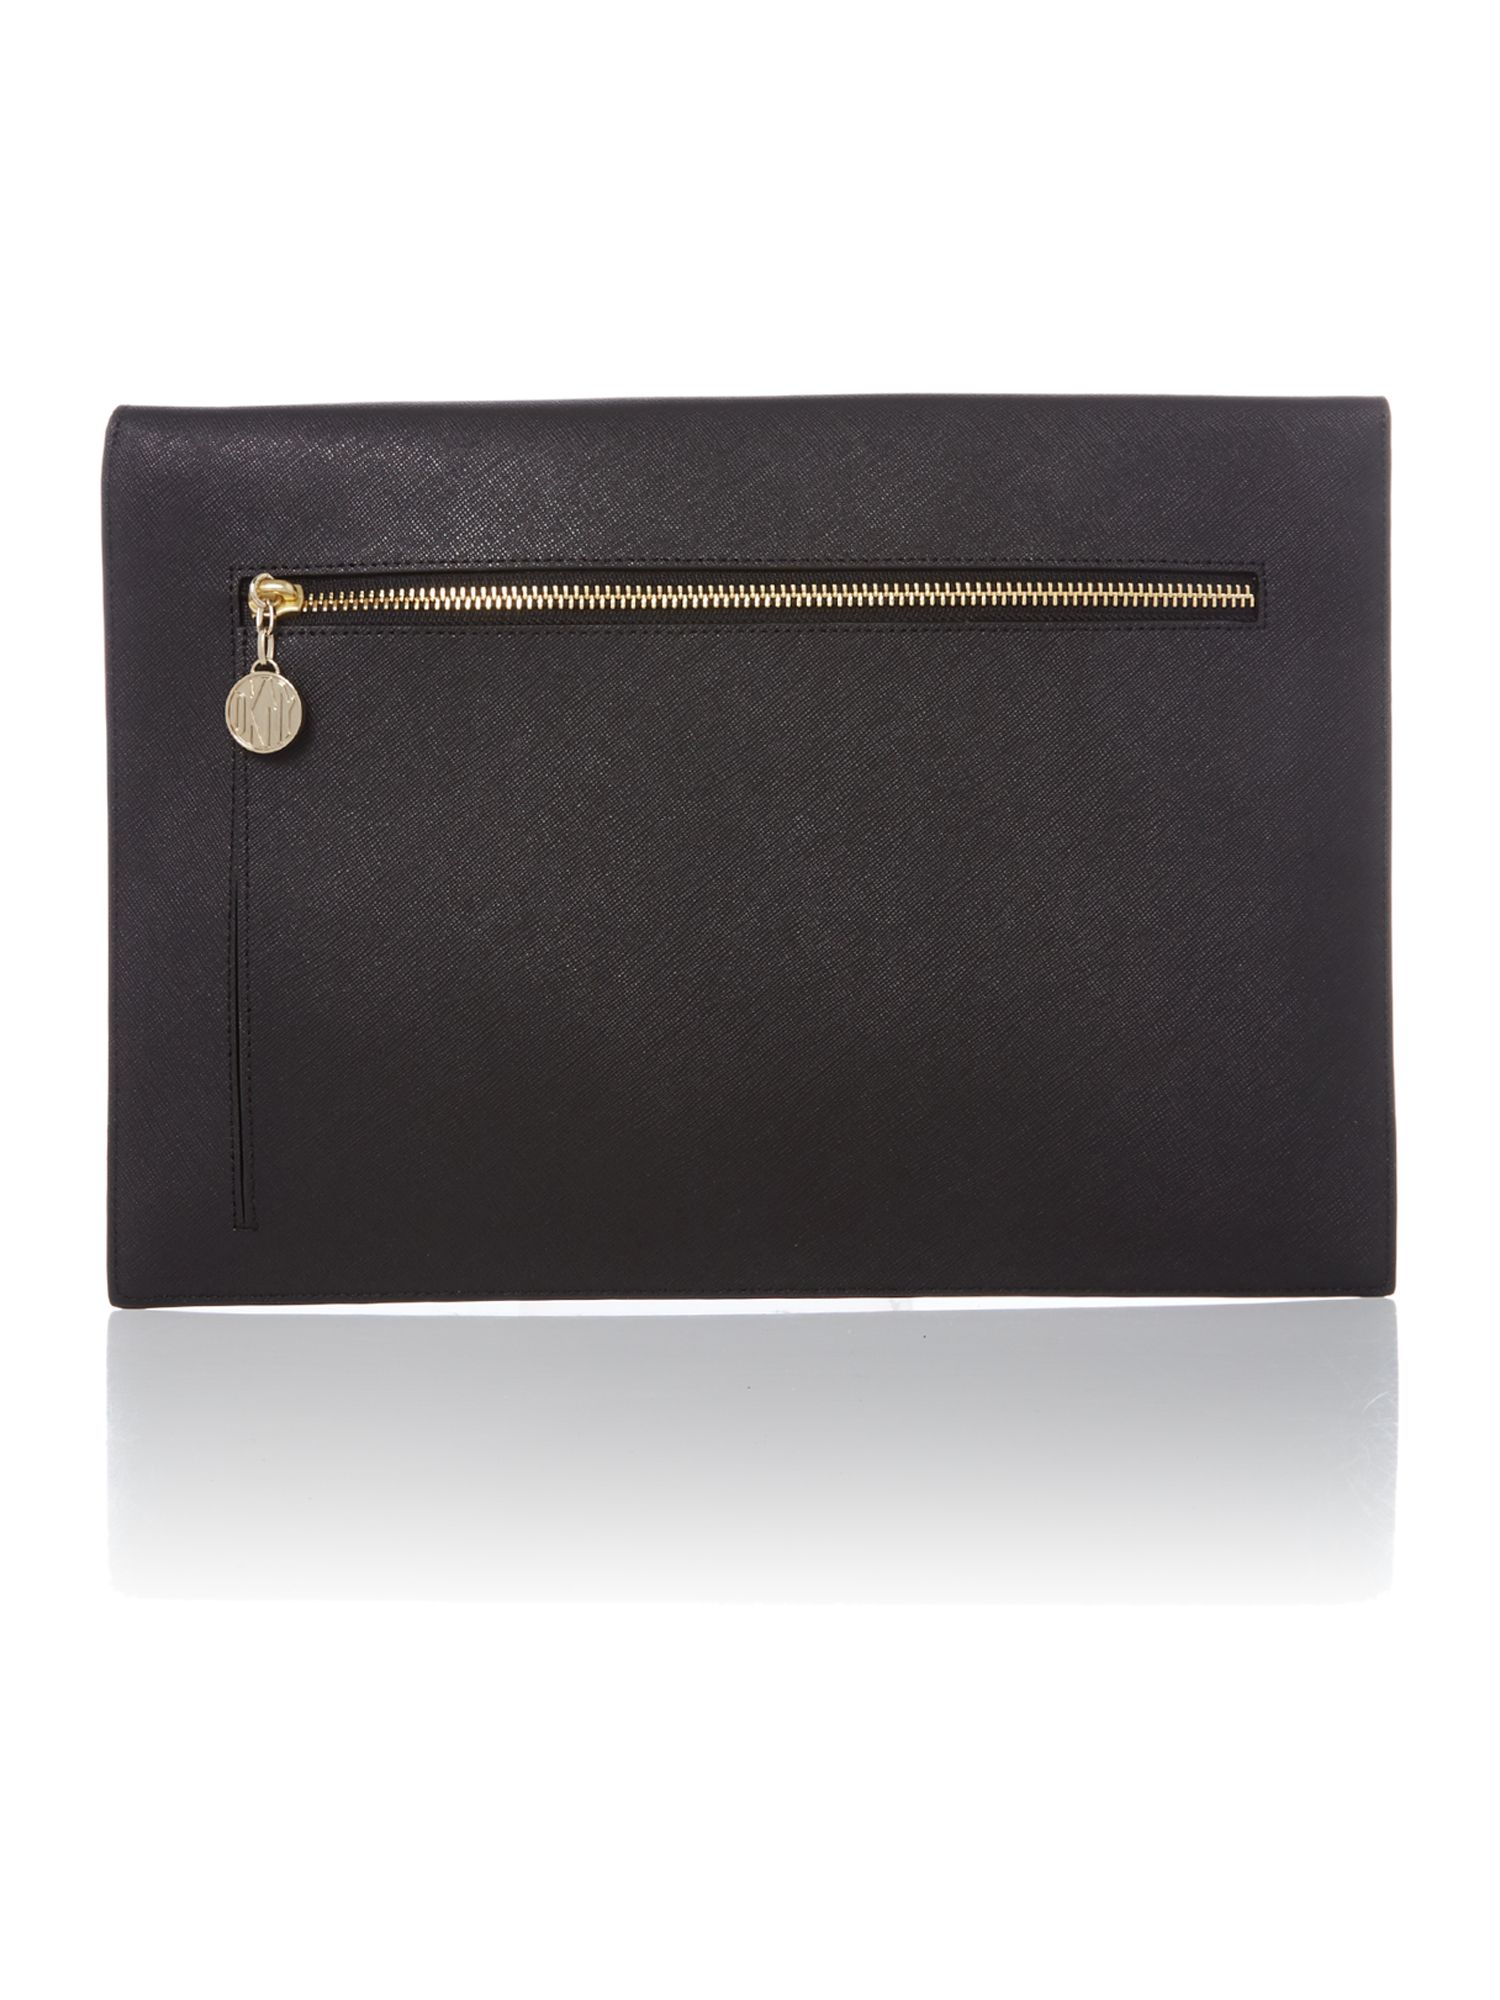 Saffiano black large document holder